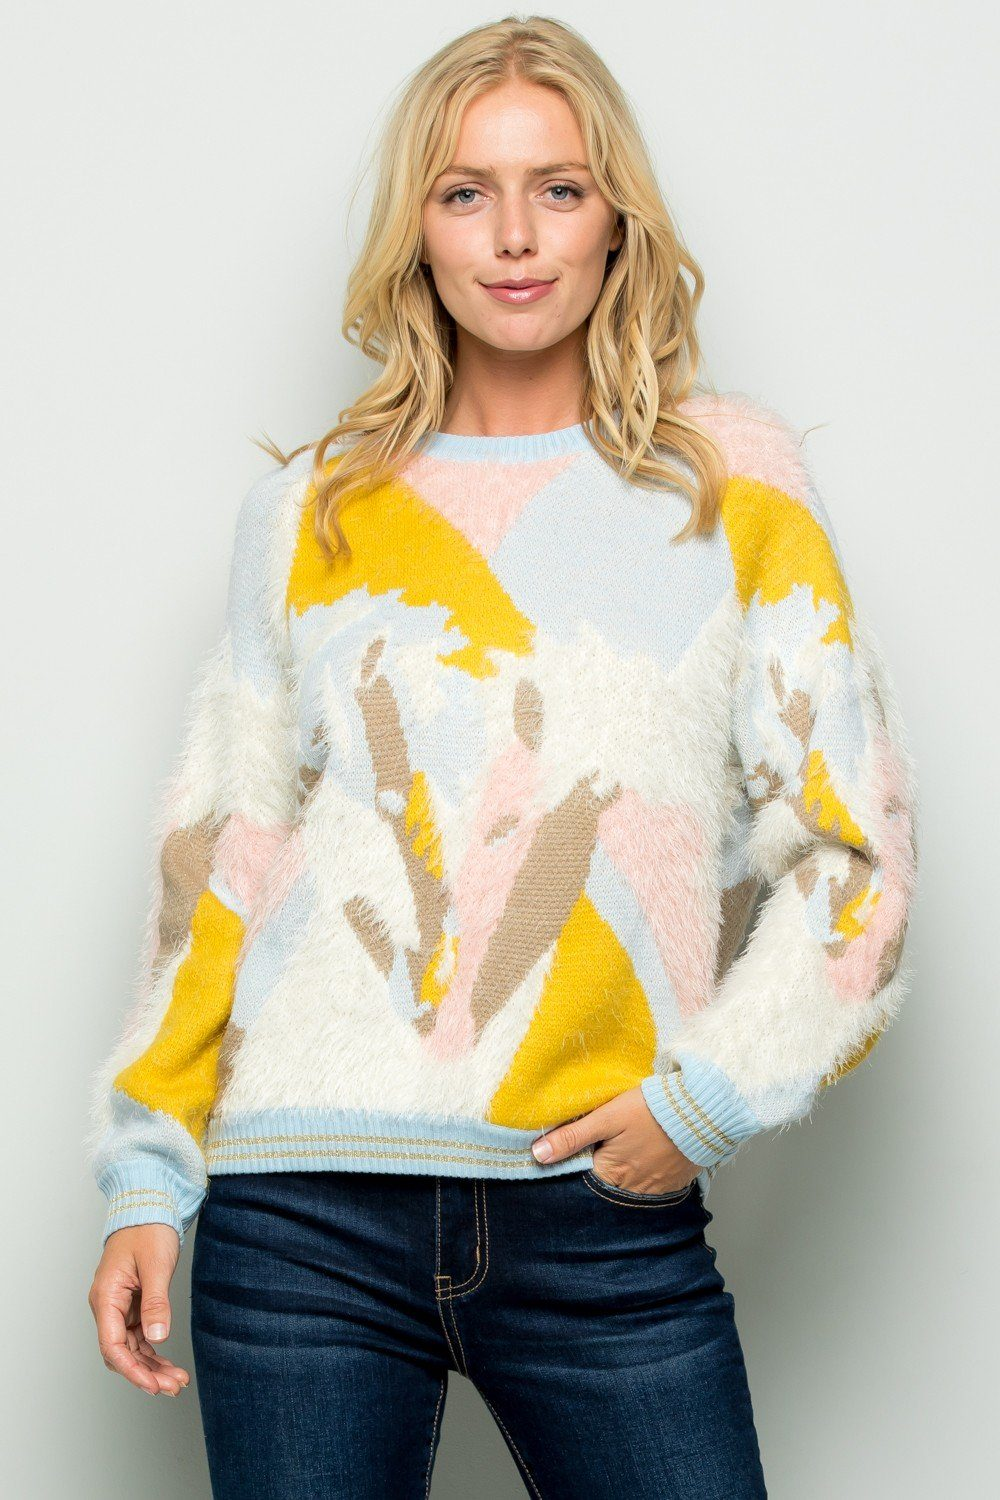 Whimsical Winter Multi Sweater - Caroline Hill